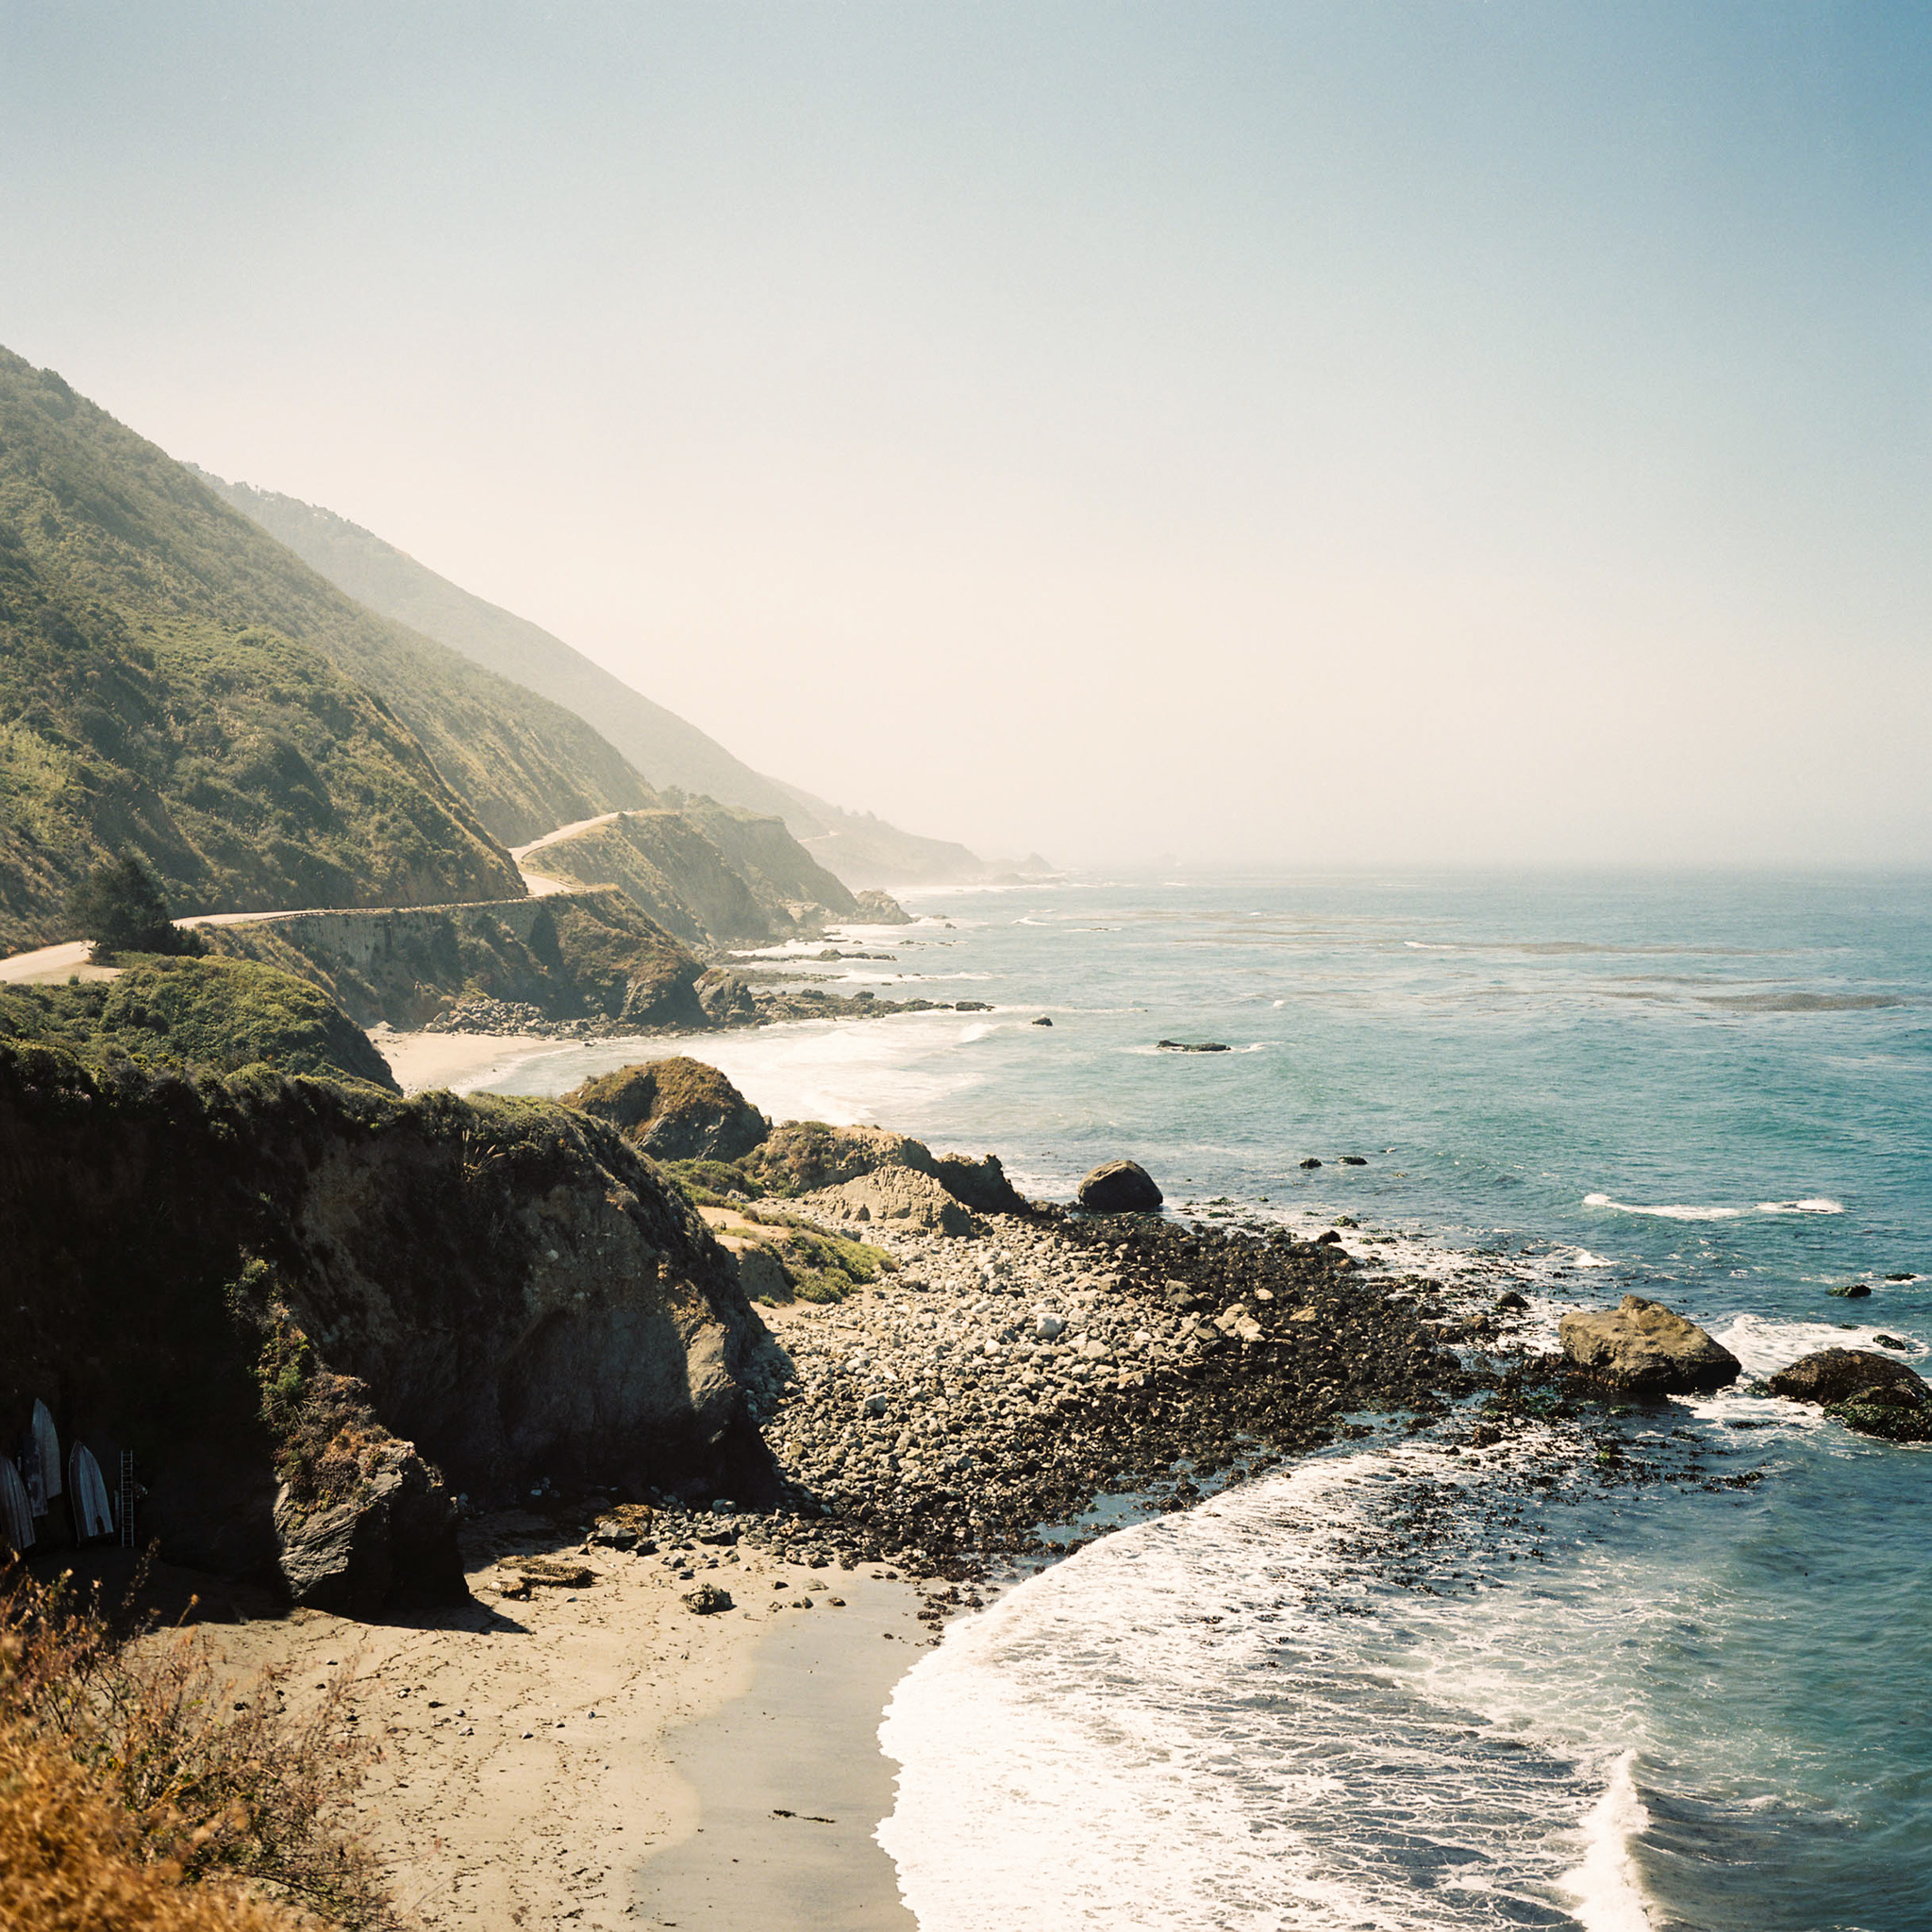 Pacific Coast Highway, 2013